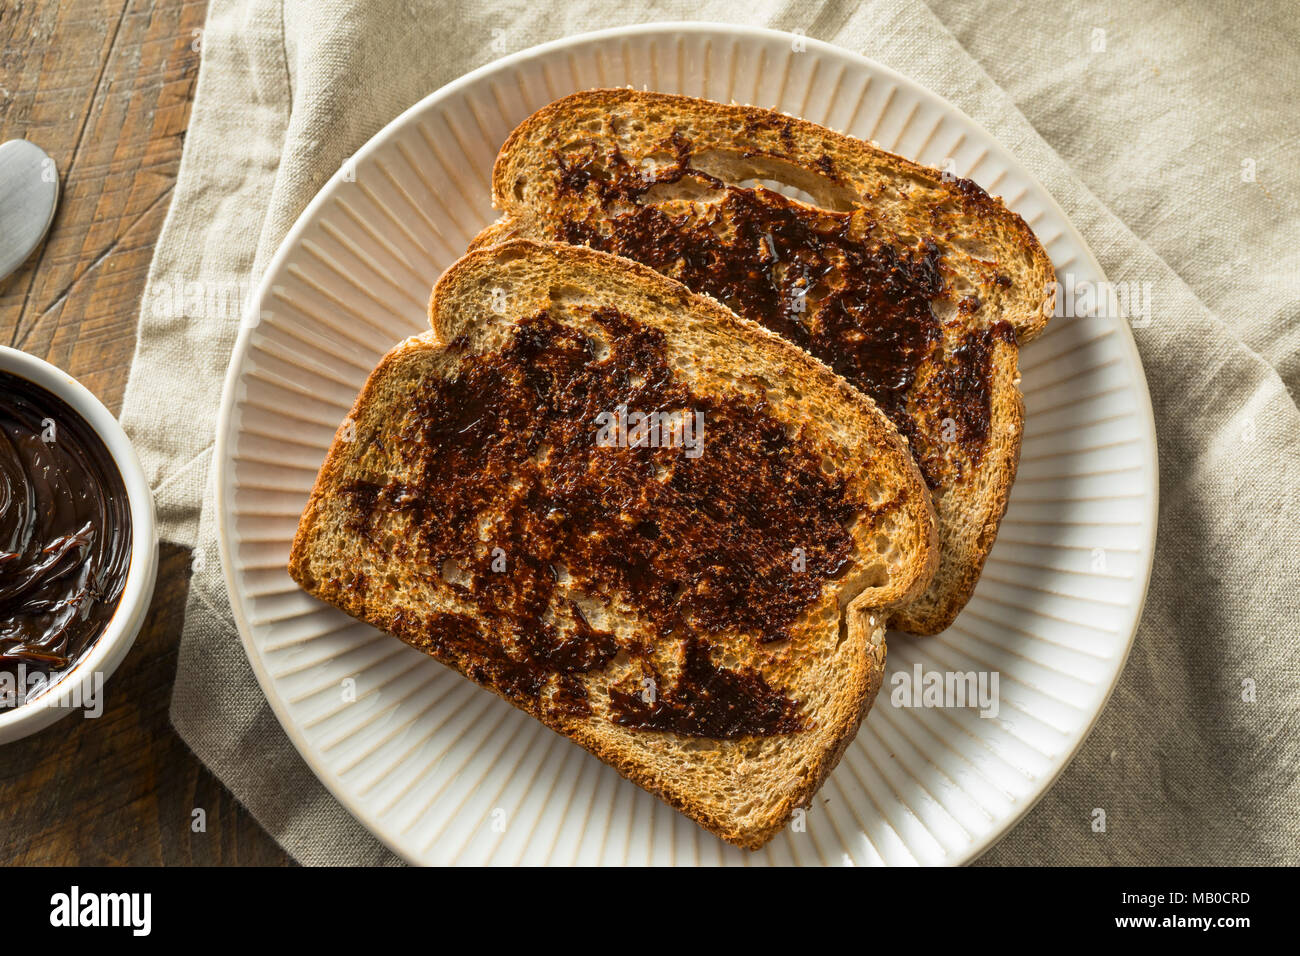 Delicious Australian Dark Yeast Extract Spread for Toast - Stock Image